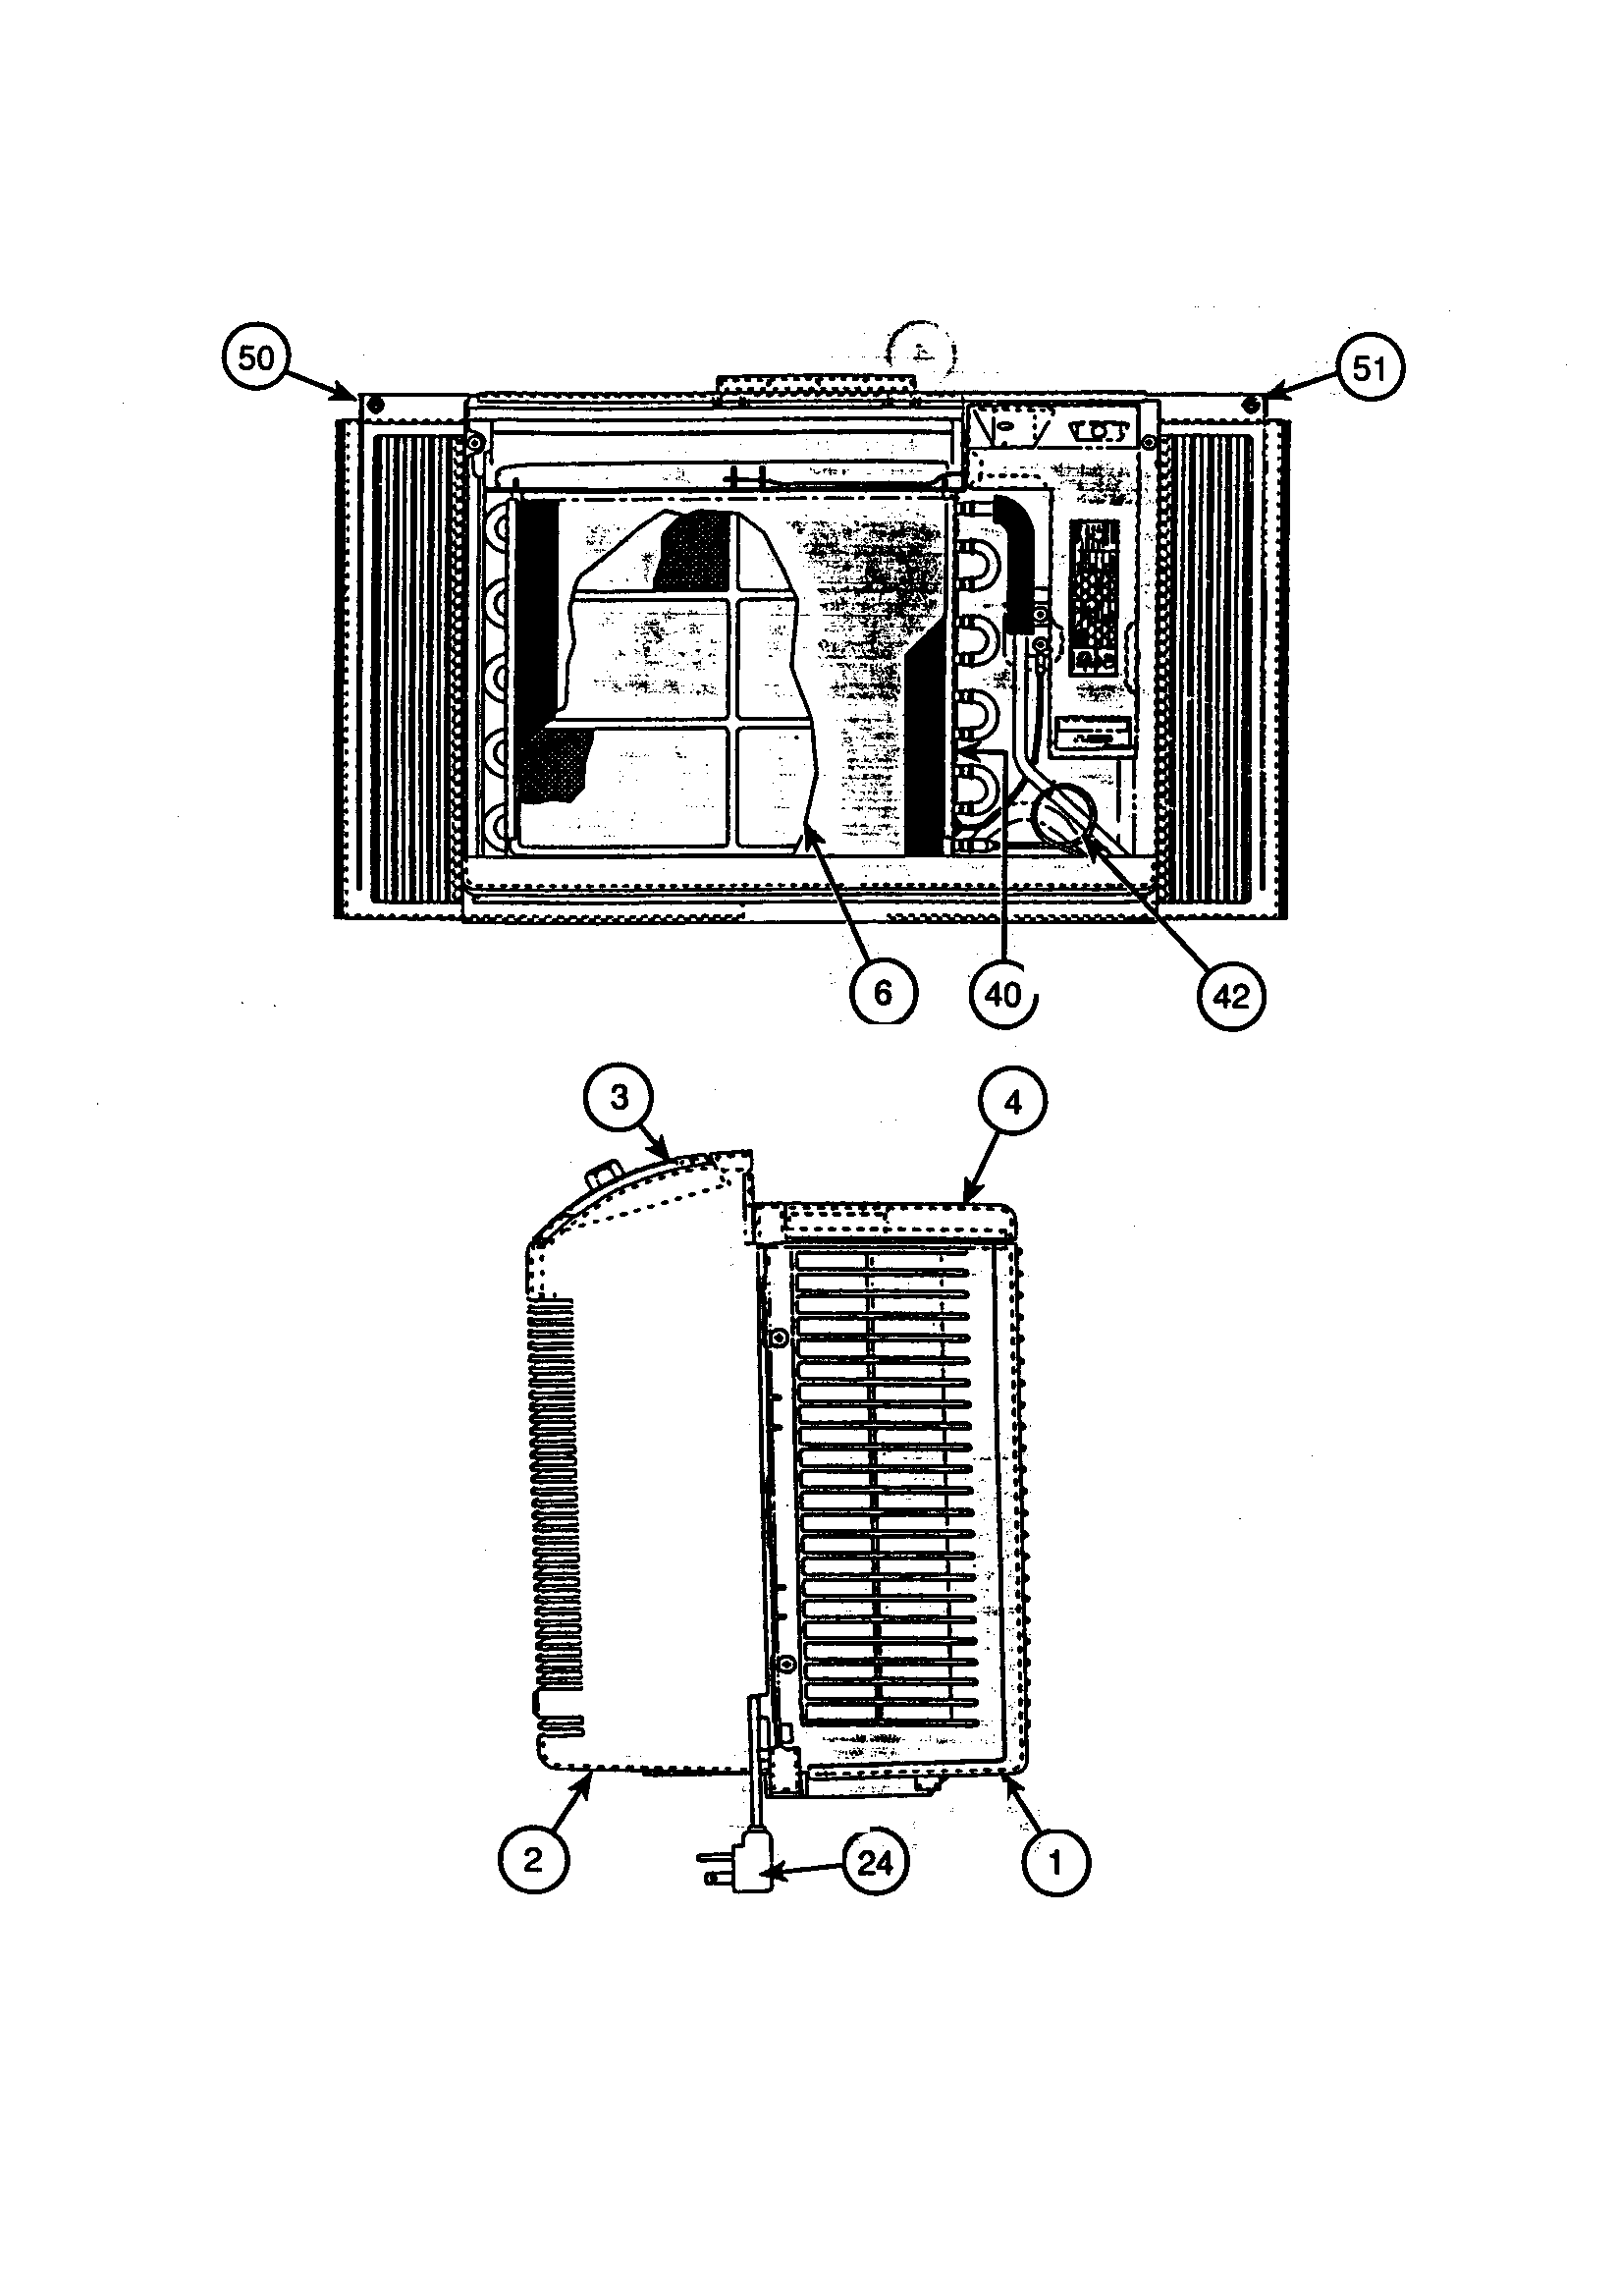 gm air conditioning diagram html